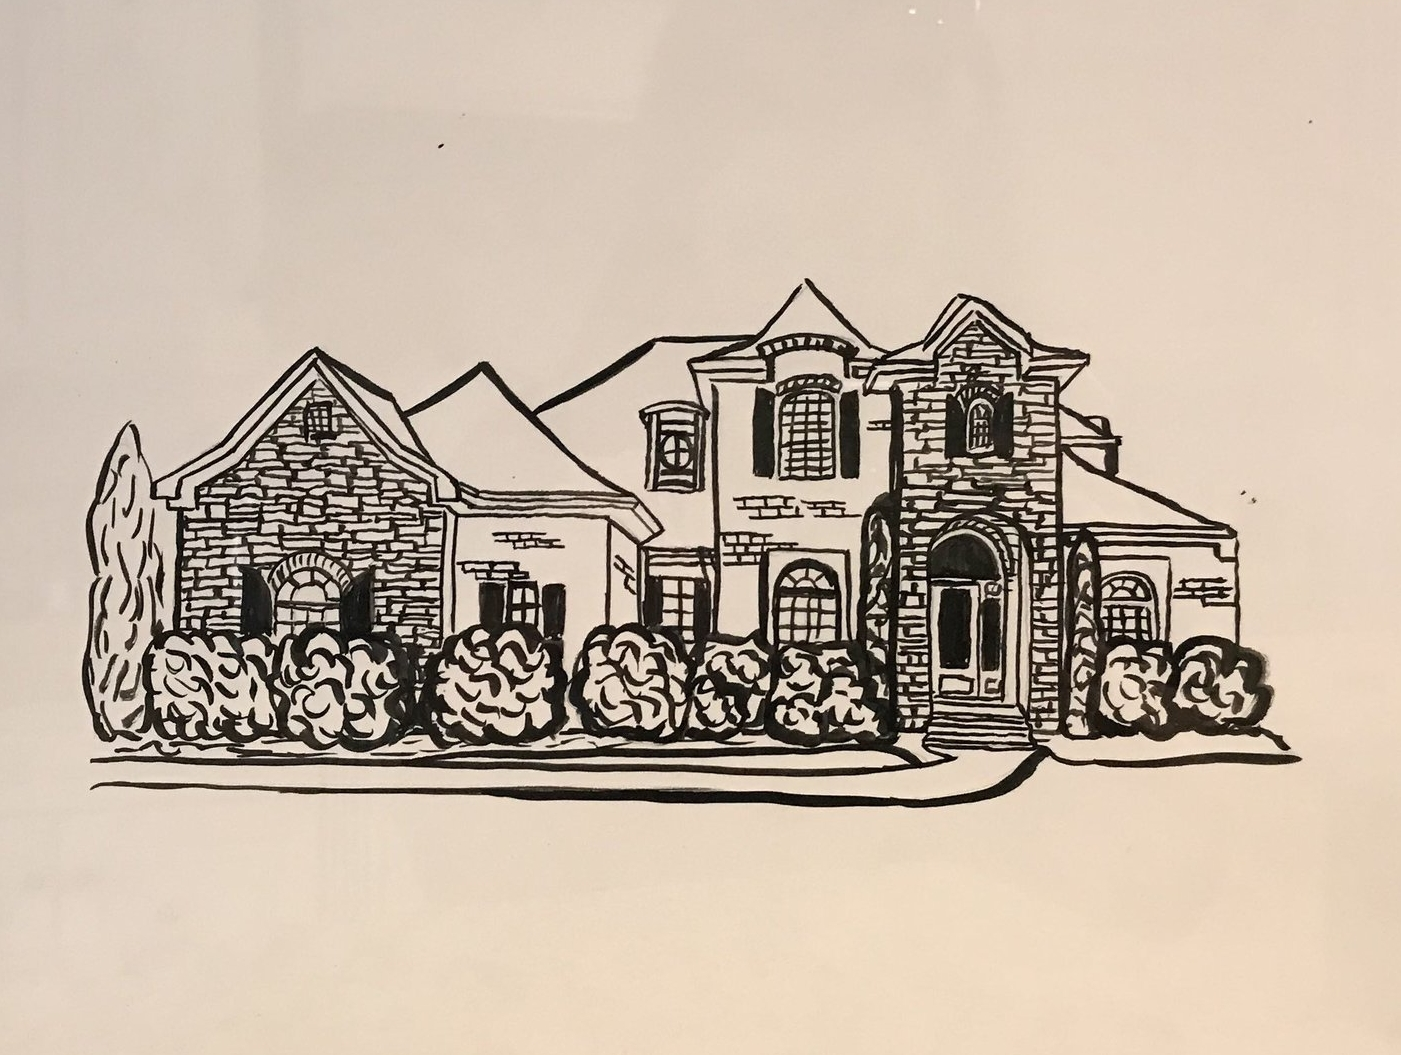 BLACK INK HOME DRAWING   Capture your beautiful home in art with this 8x10 unframed, black ink drawing on stiff bristol board paper. You provide the photos of the home to be drawn.  DONOR: Eliza Kate Carter VALUE: $75